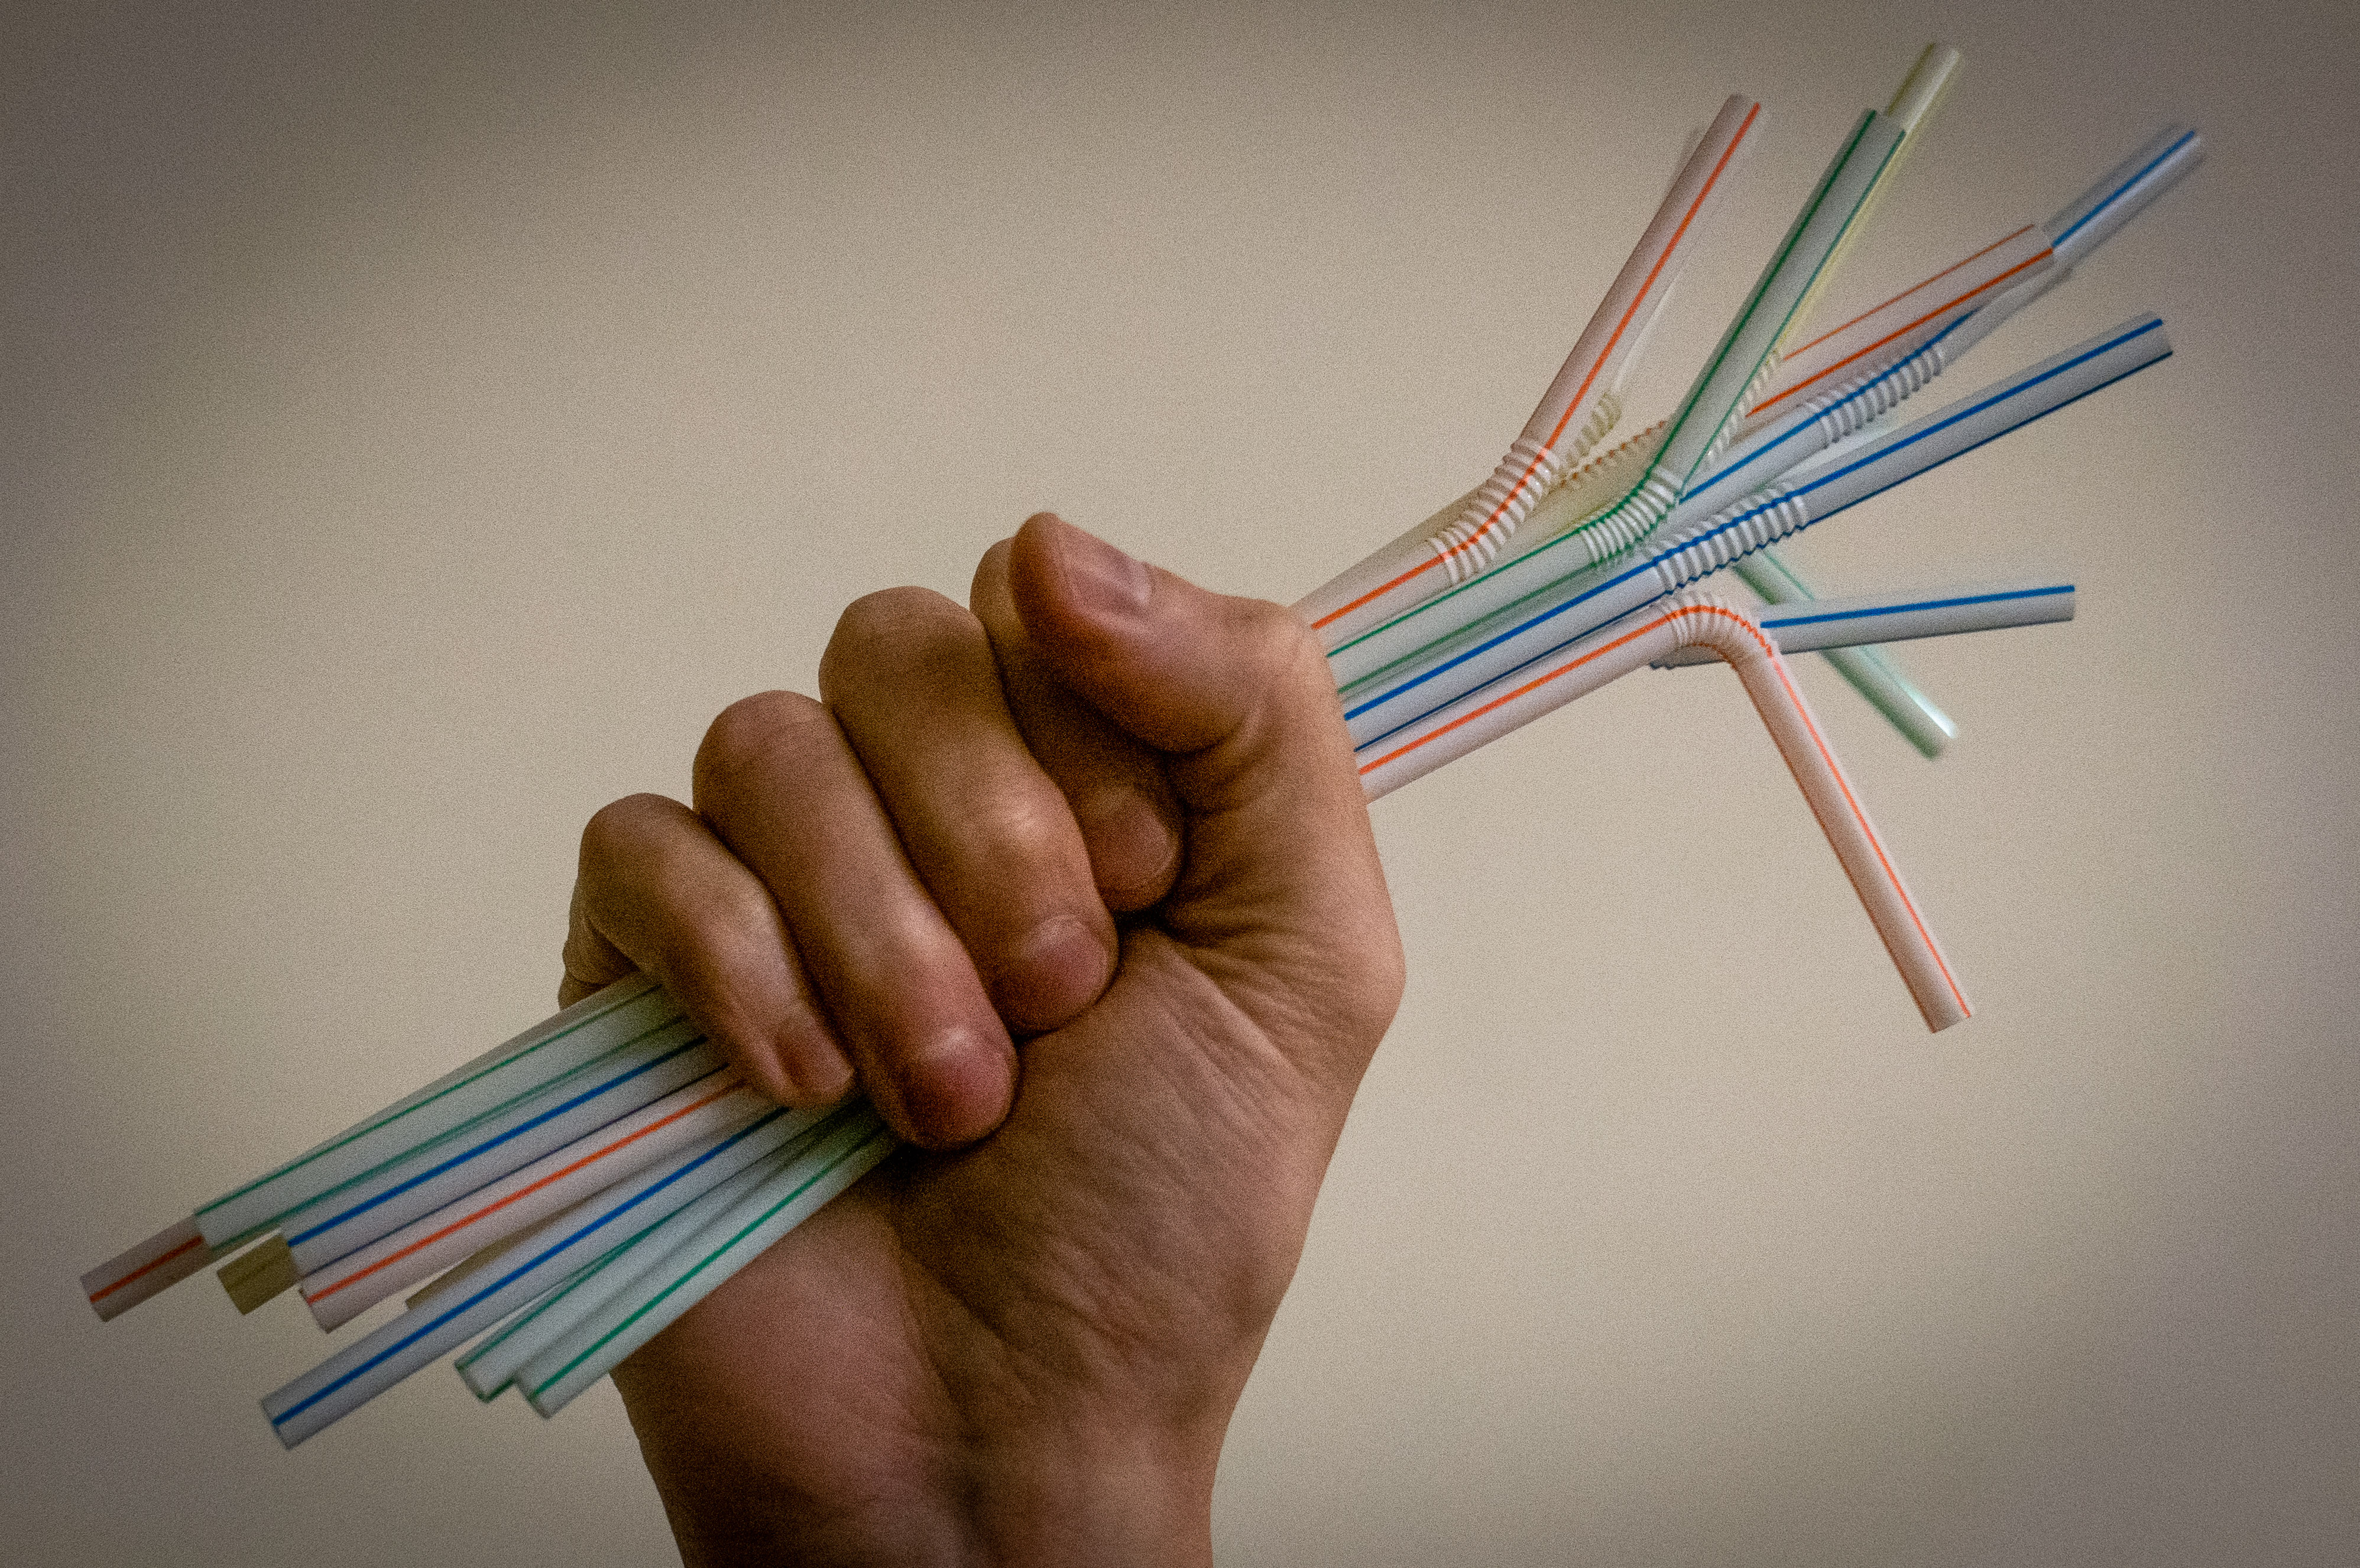 <p>Plastic straws might soon become an endangered species as environmentalists turn their focus to the reduction of plastic waste in oceans and landfills.</p>